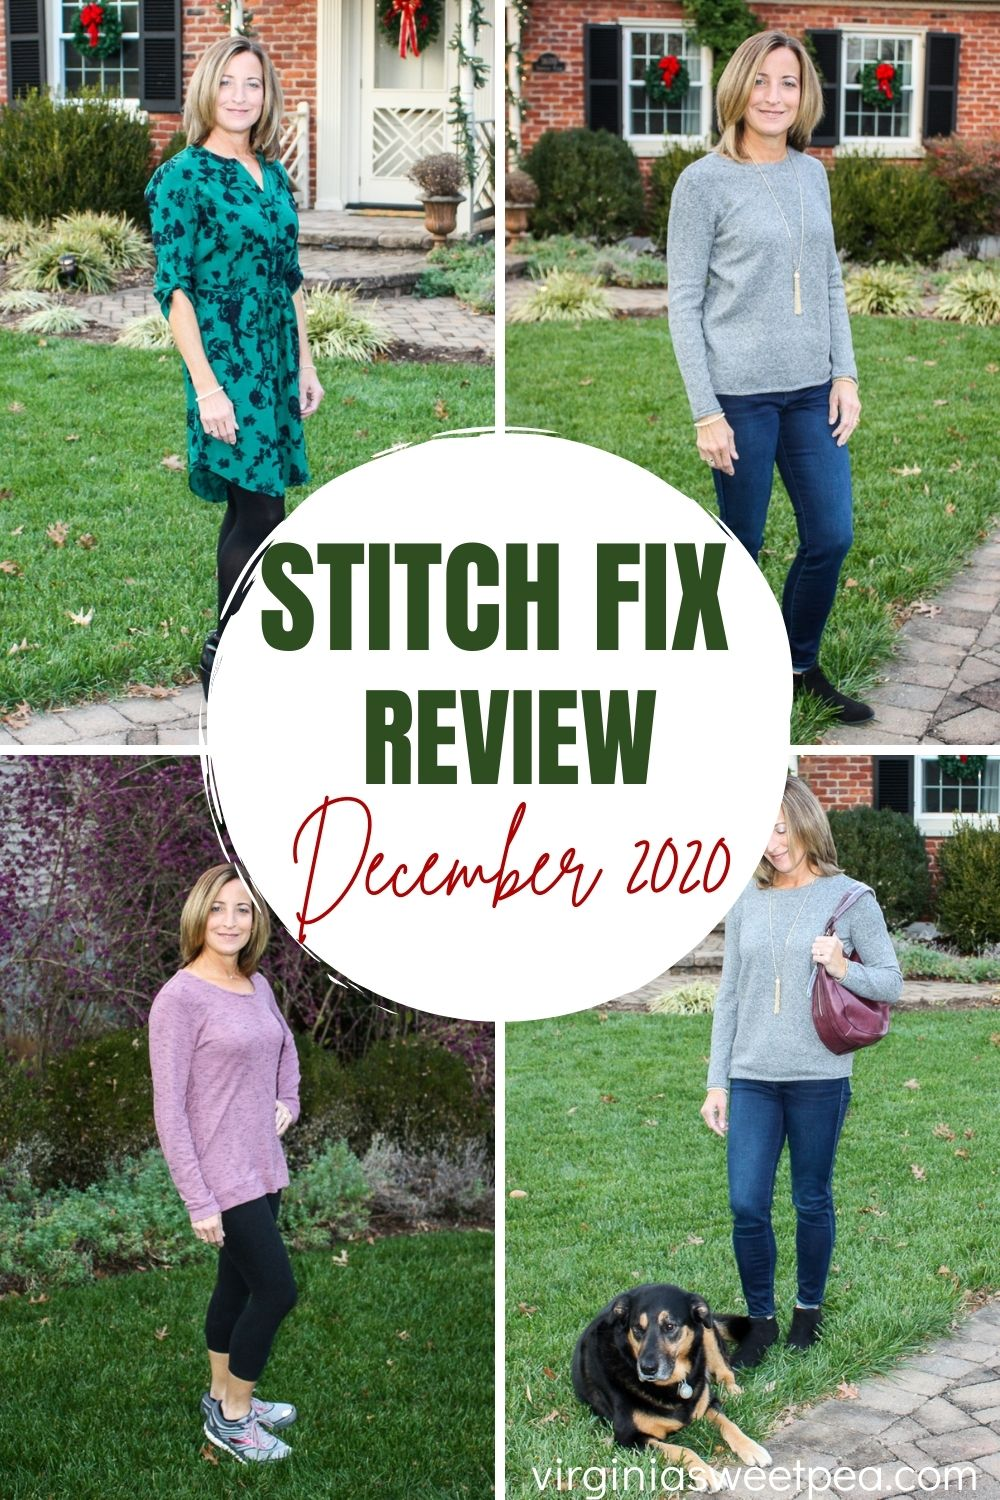 Stitch Fix Review for December 2020